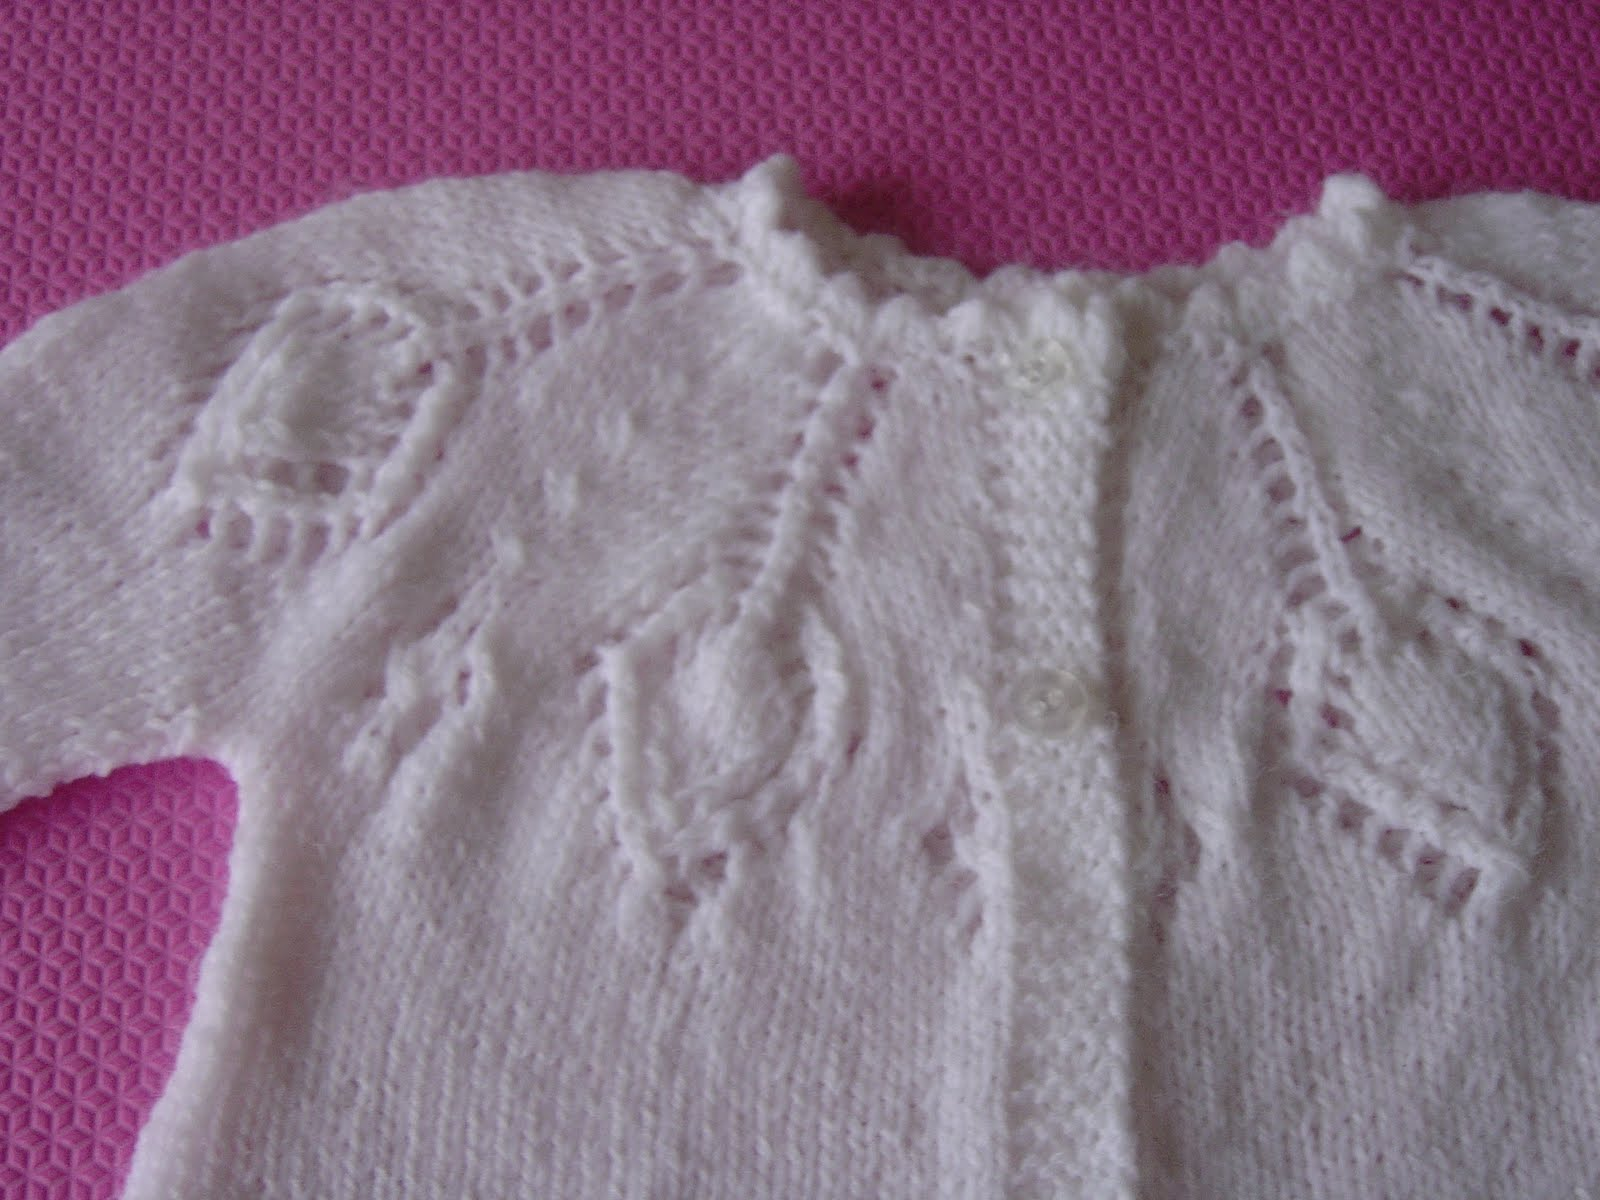 Knitted Baby Patterns Free Online : Free Knitting Pattern And Tutorial: Baby Knitting Pattern